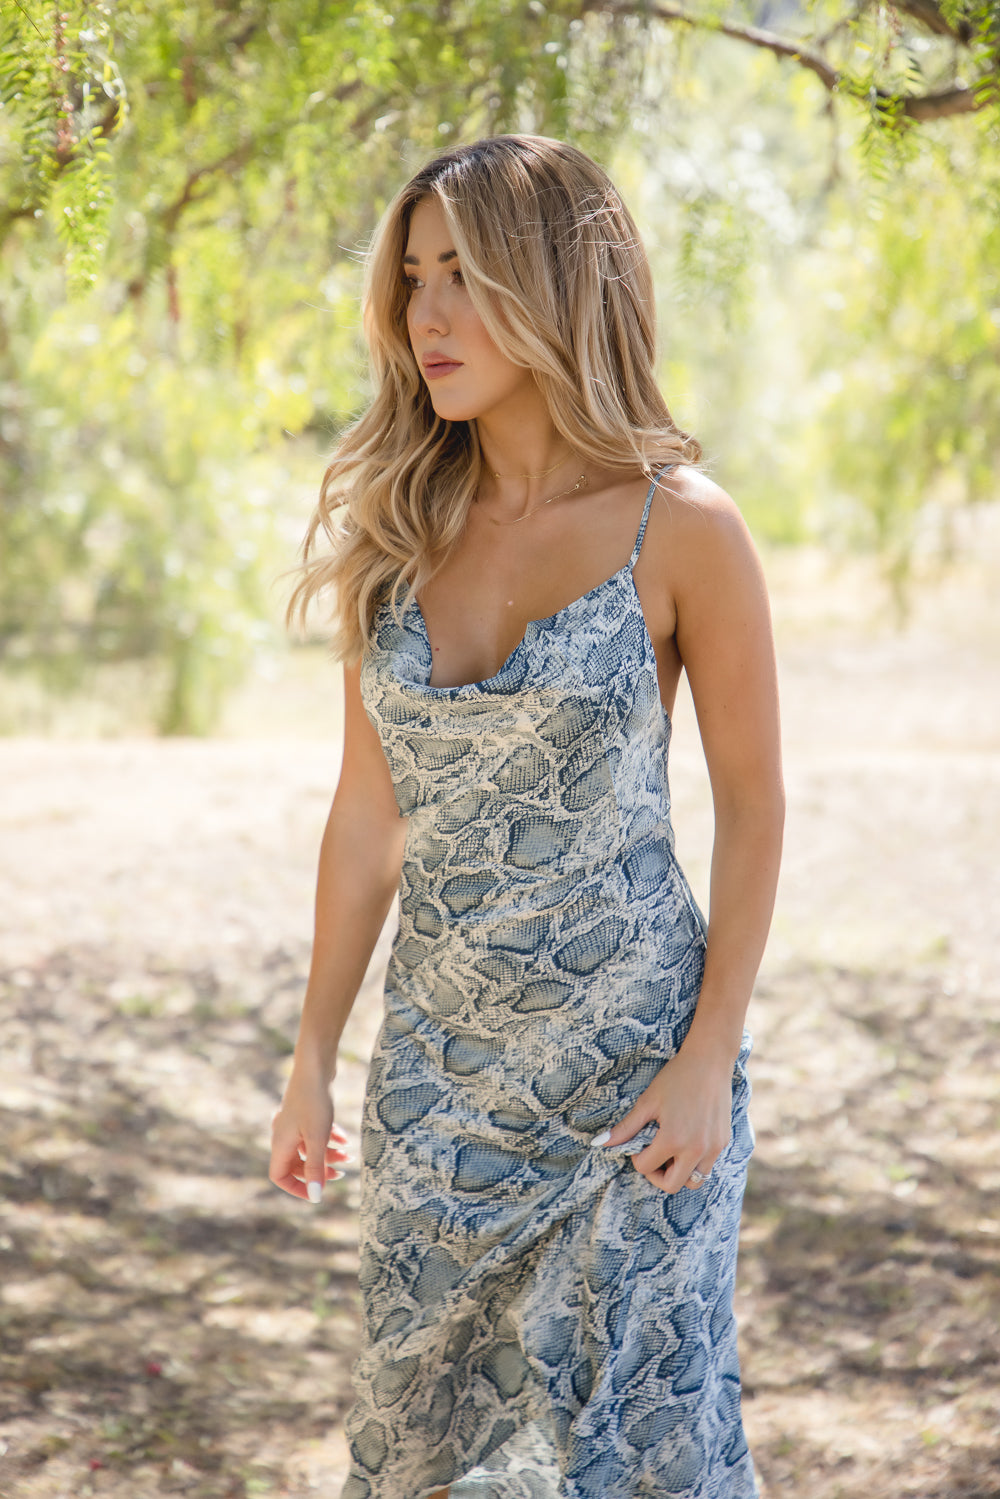 Olive Snakeskin Print Cowl Neck Midi Dress